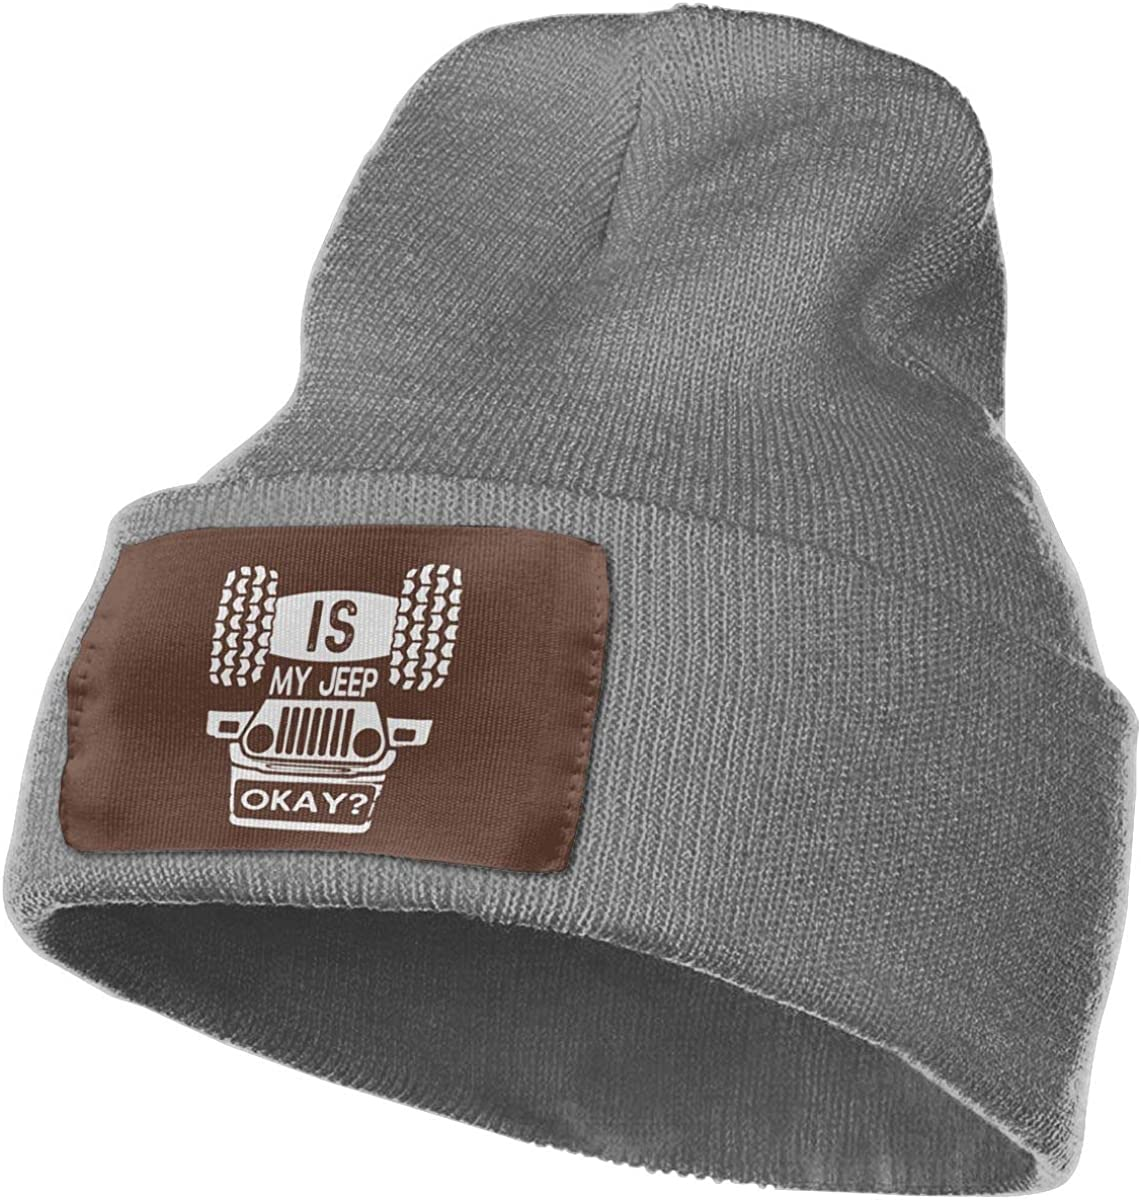 is My Jeep Okay Beanie Hat Wool Skull Caps for Woman Man